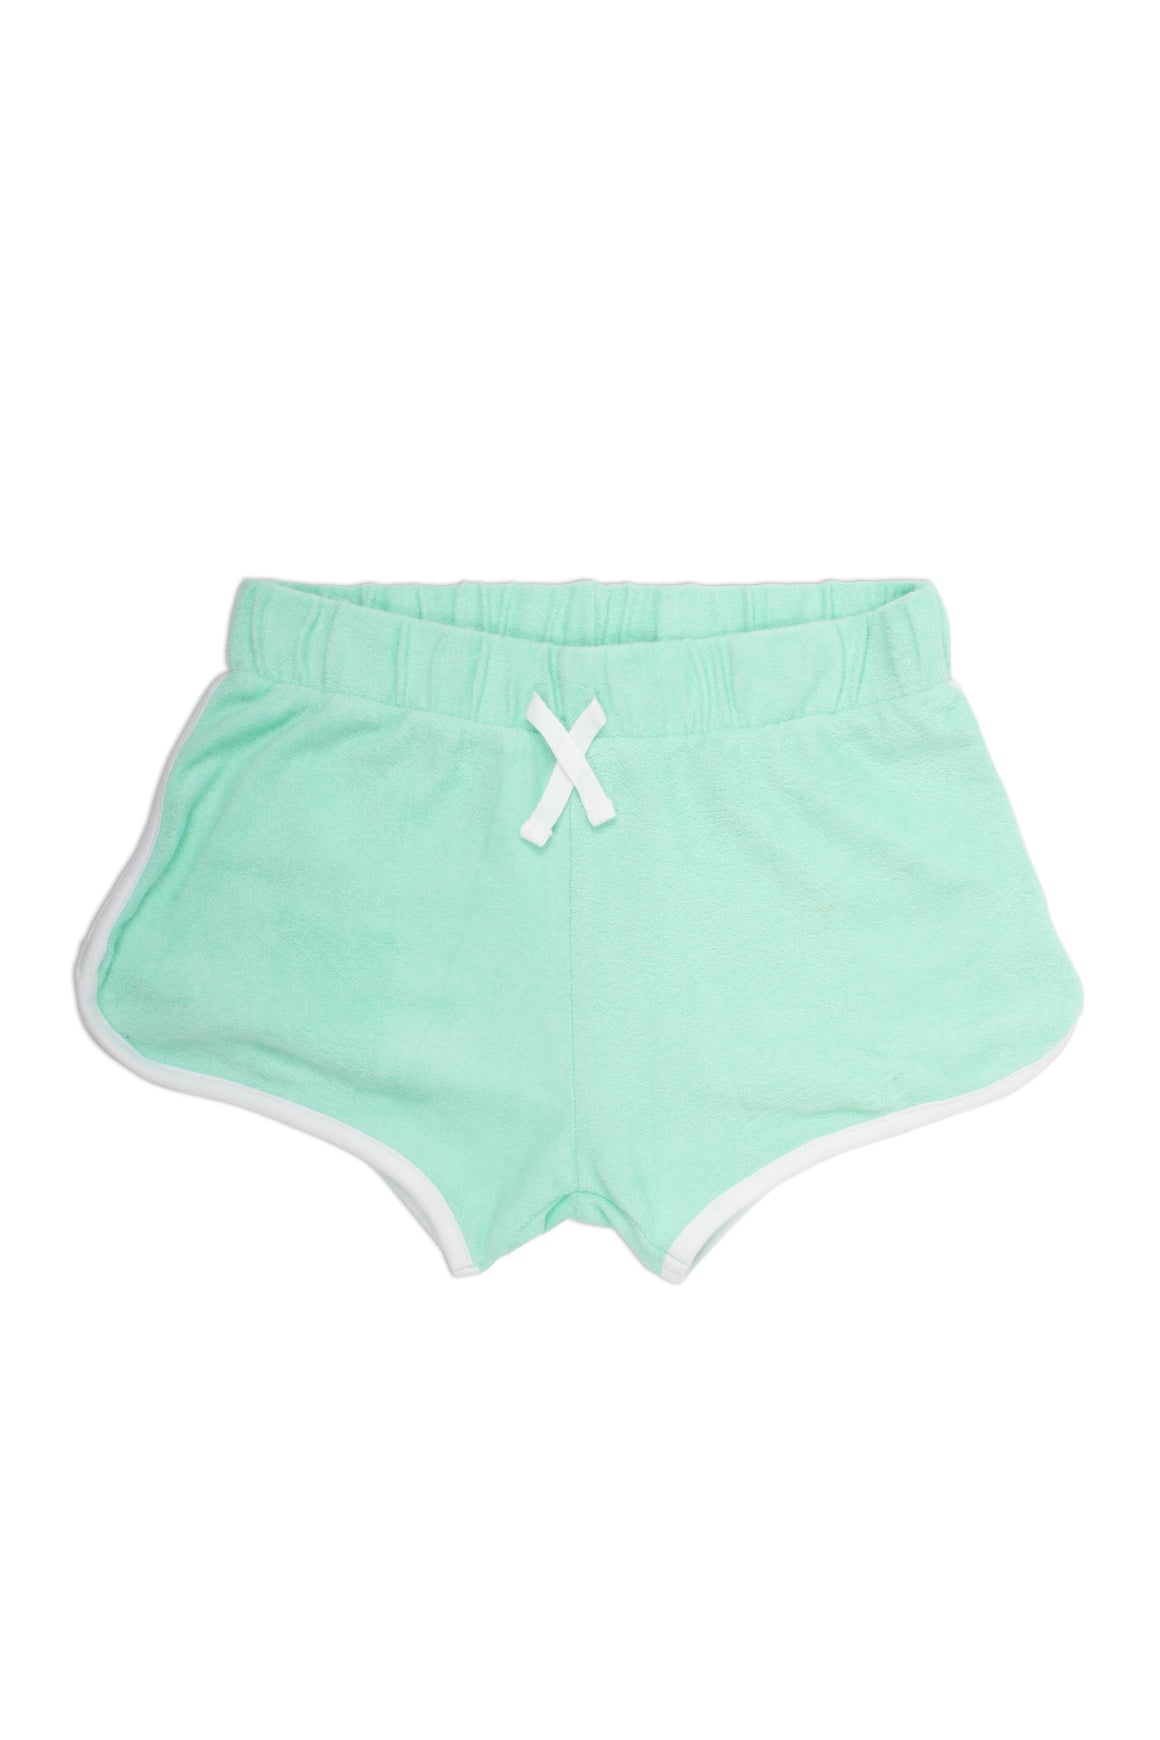 Shade Critters | Terry Shorts | Mint